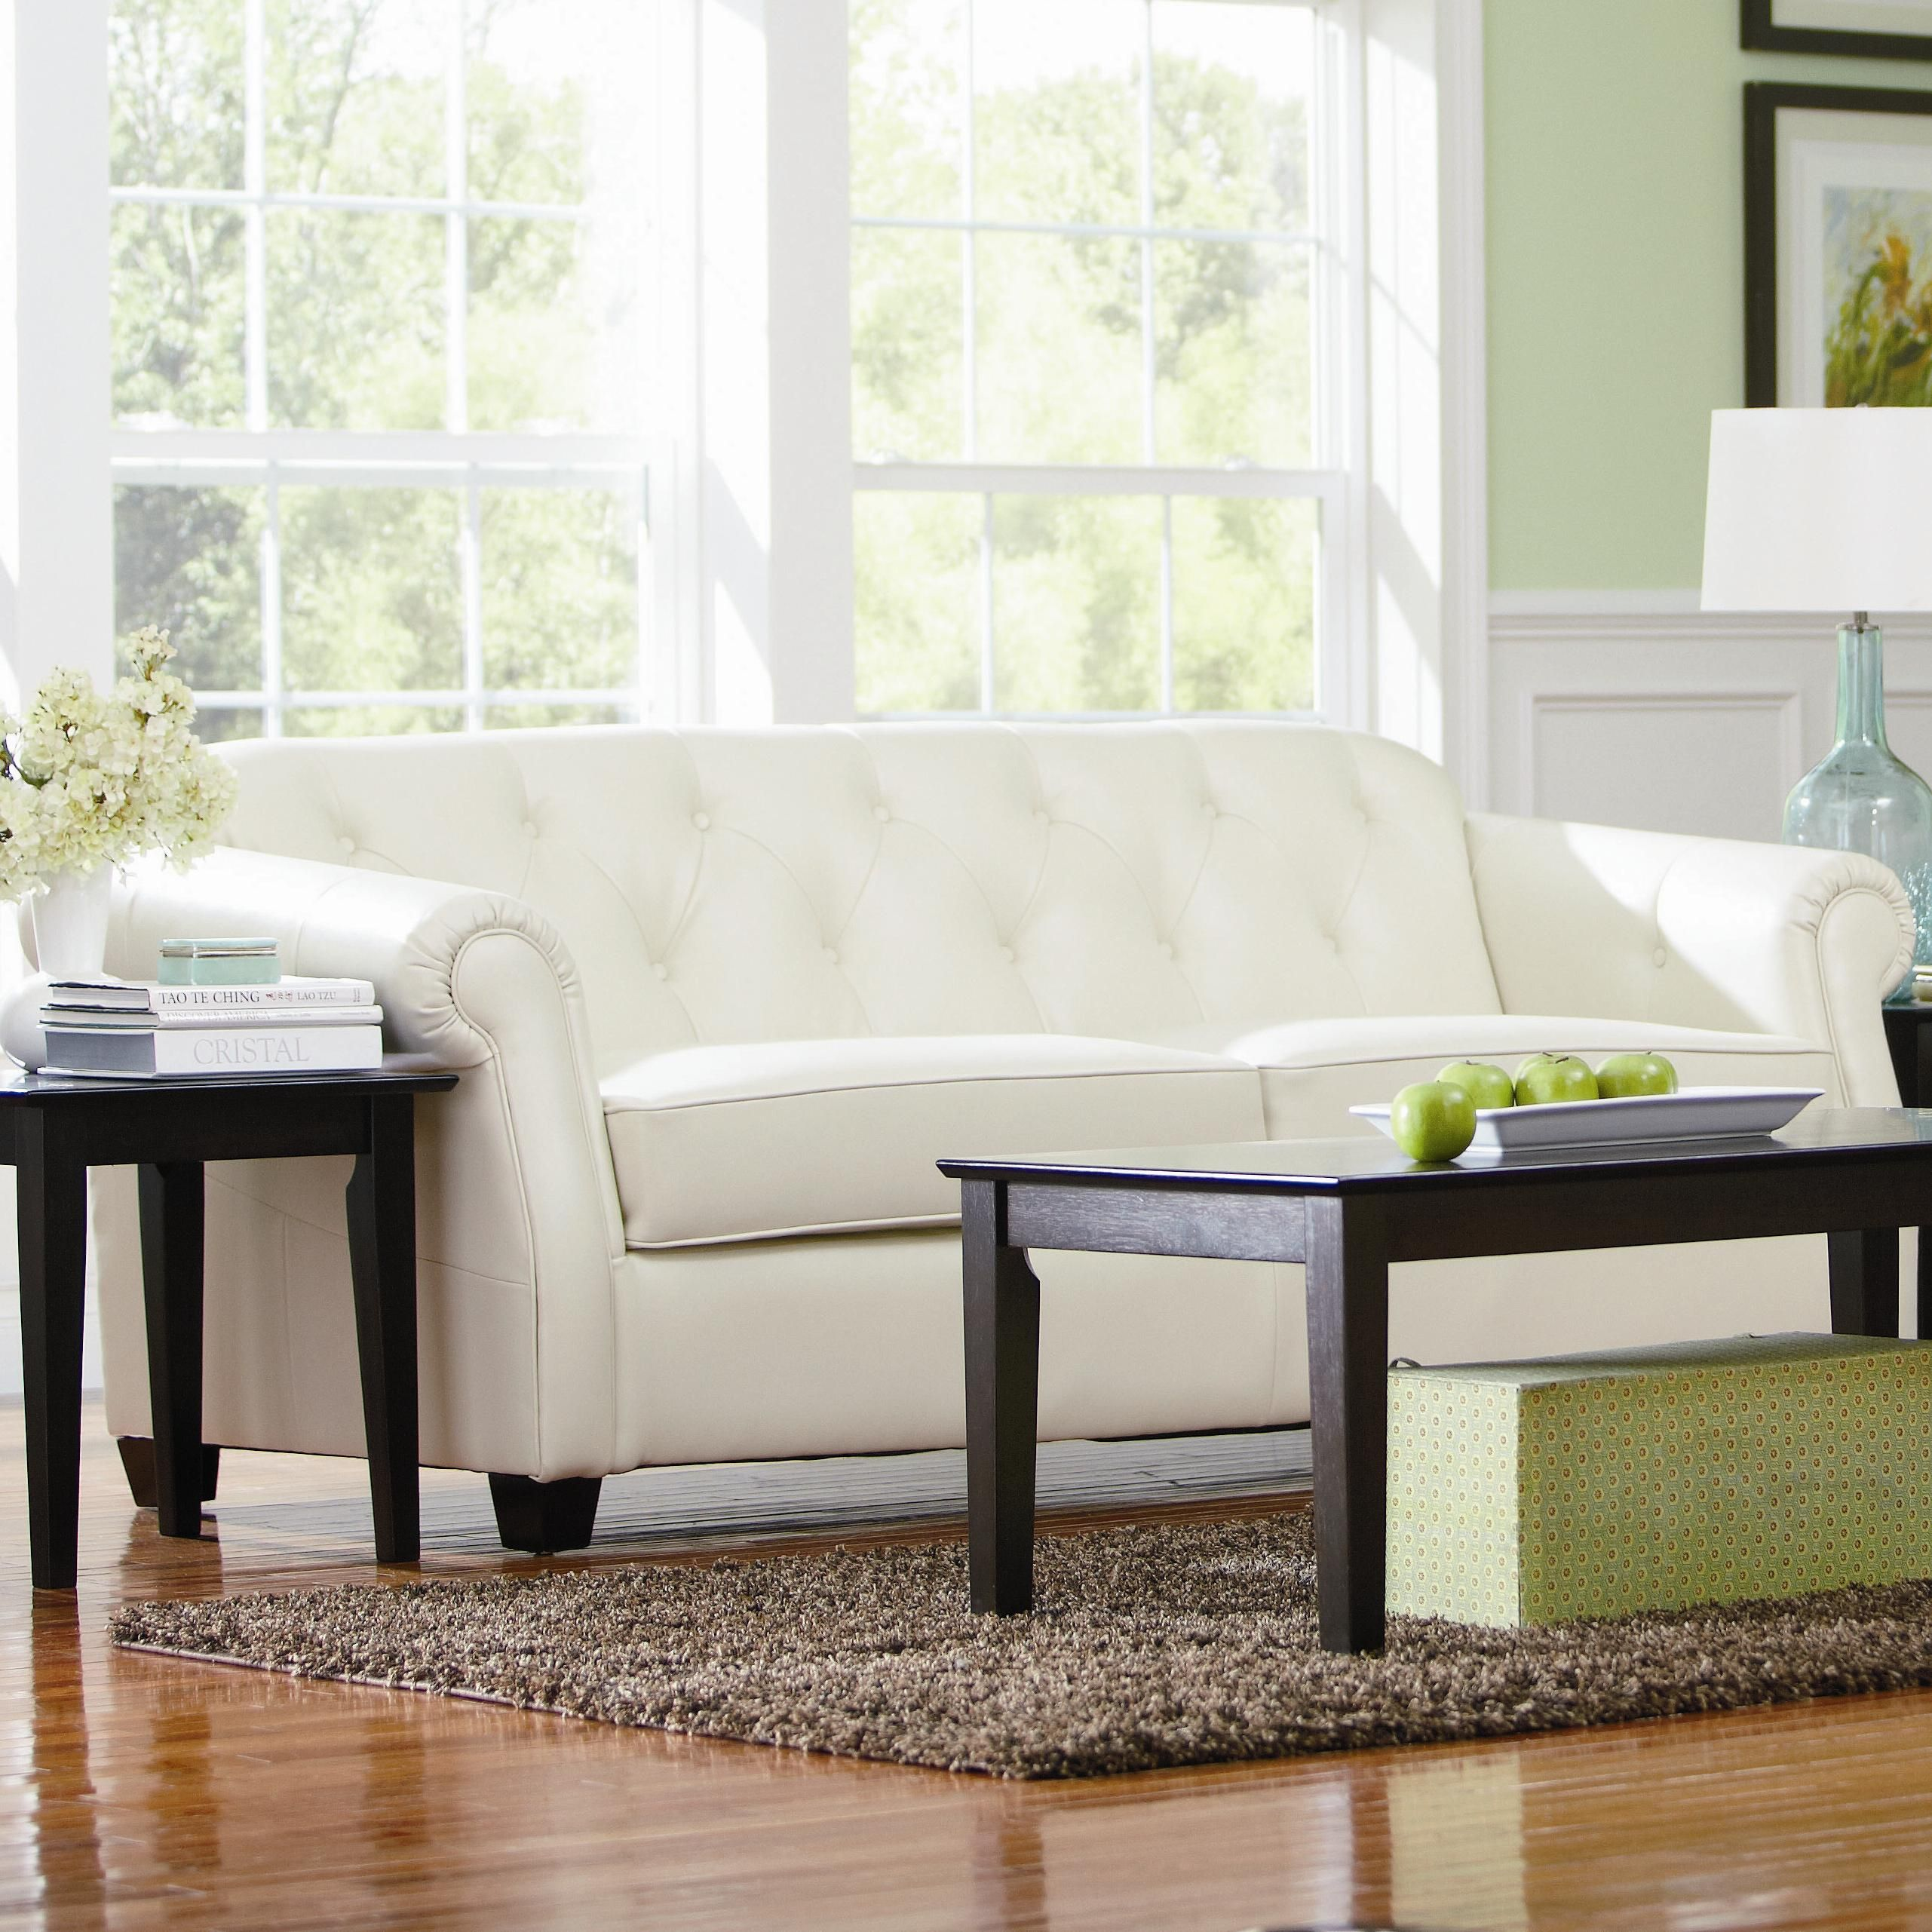 Kristyna Sofa by Coaster | H2b | Pinterest | Nest, Living rooms and Room